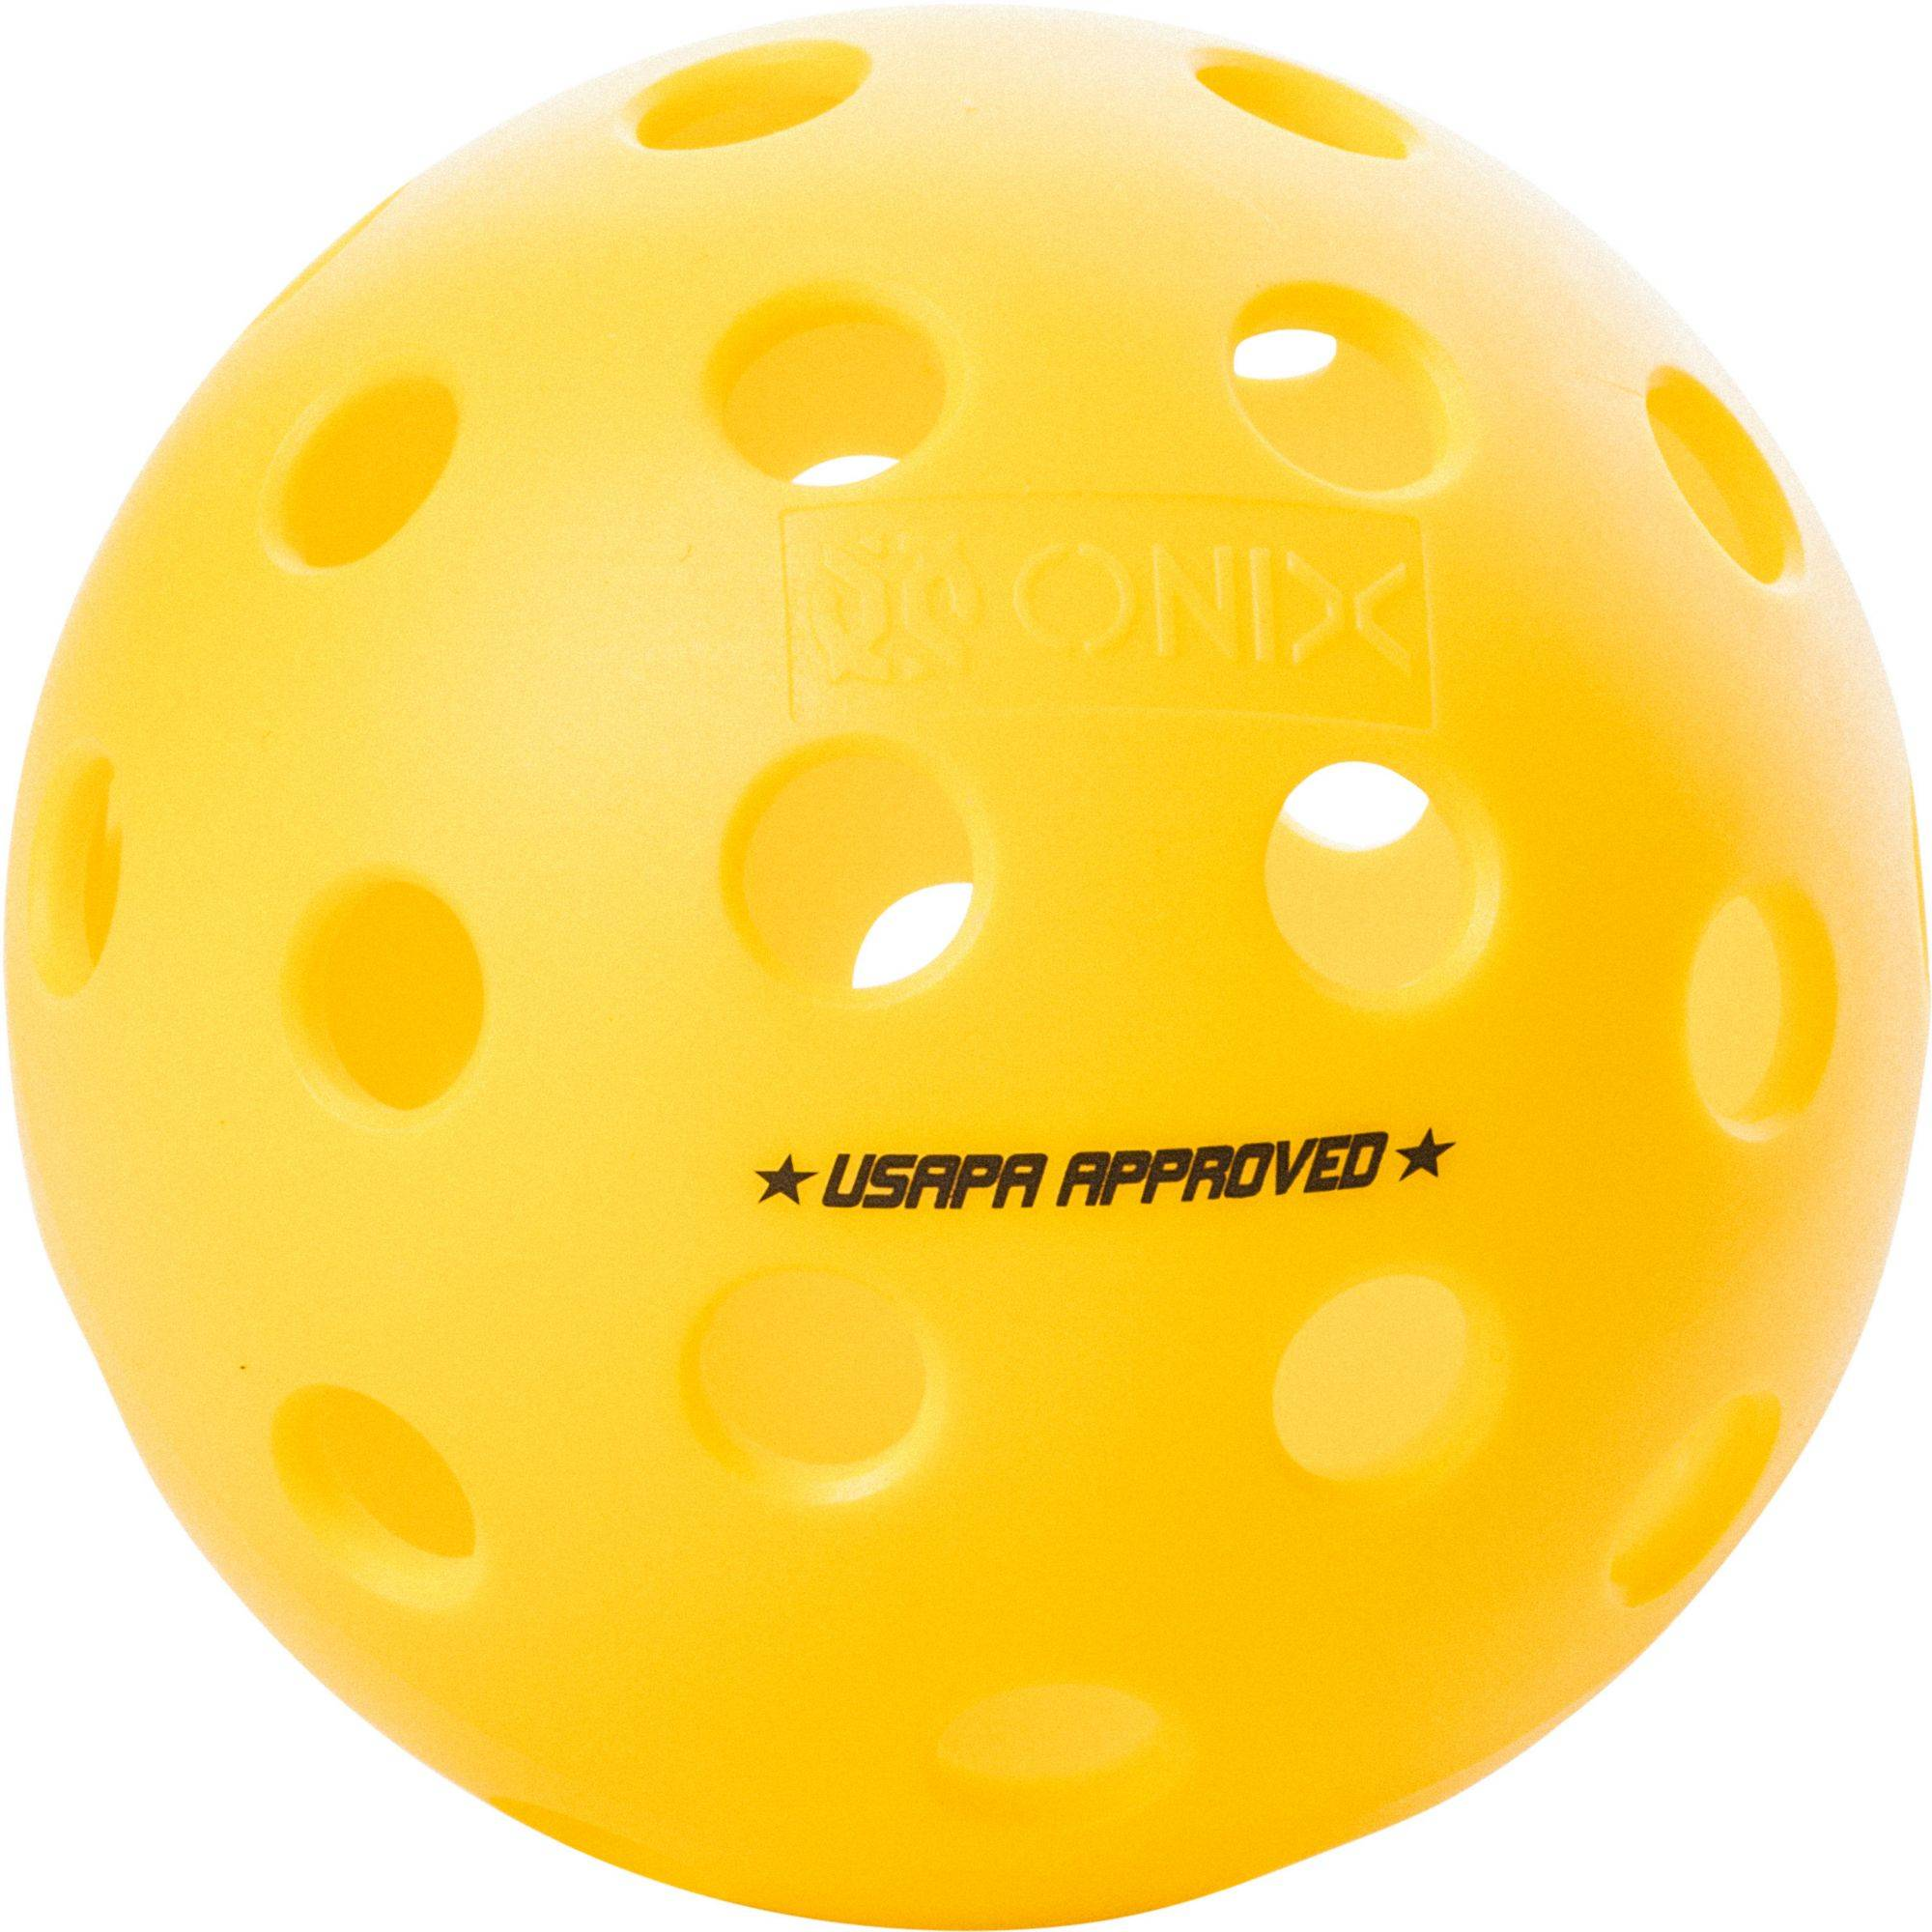 Onix Sports Onix Fuse Outdoor Pickleballs - 100 Pack, Yellow